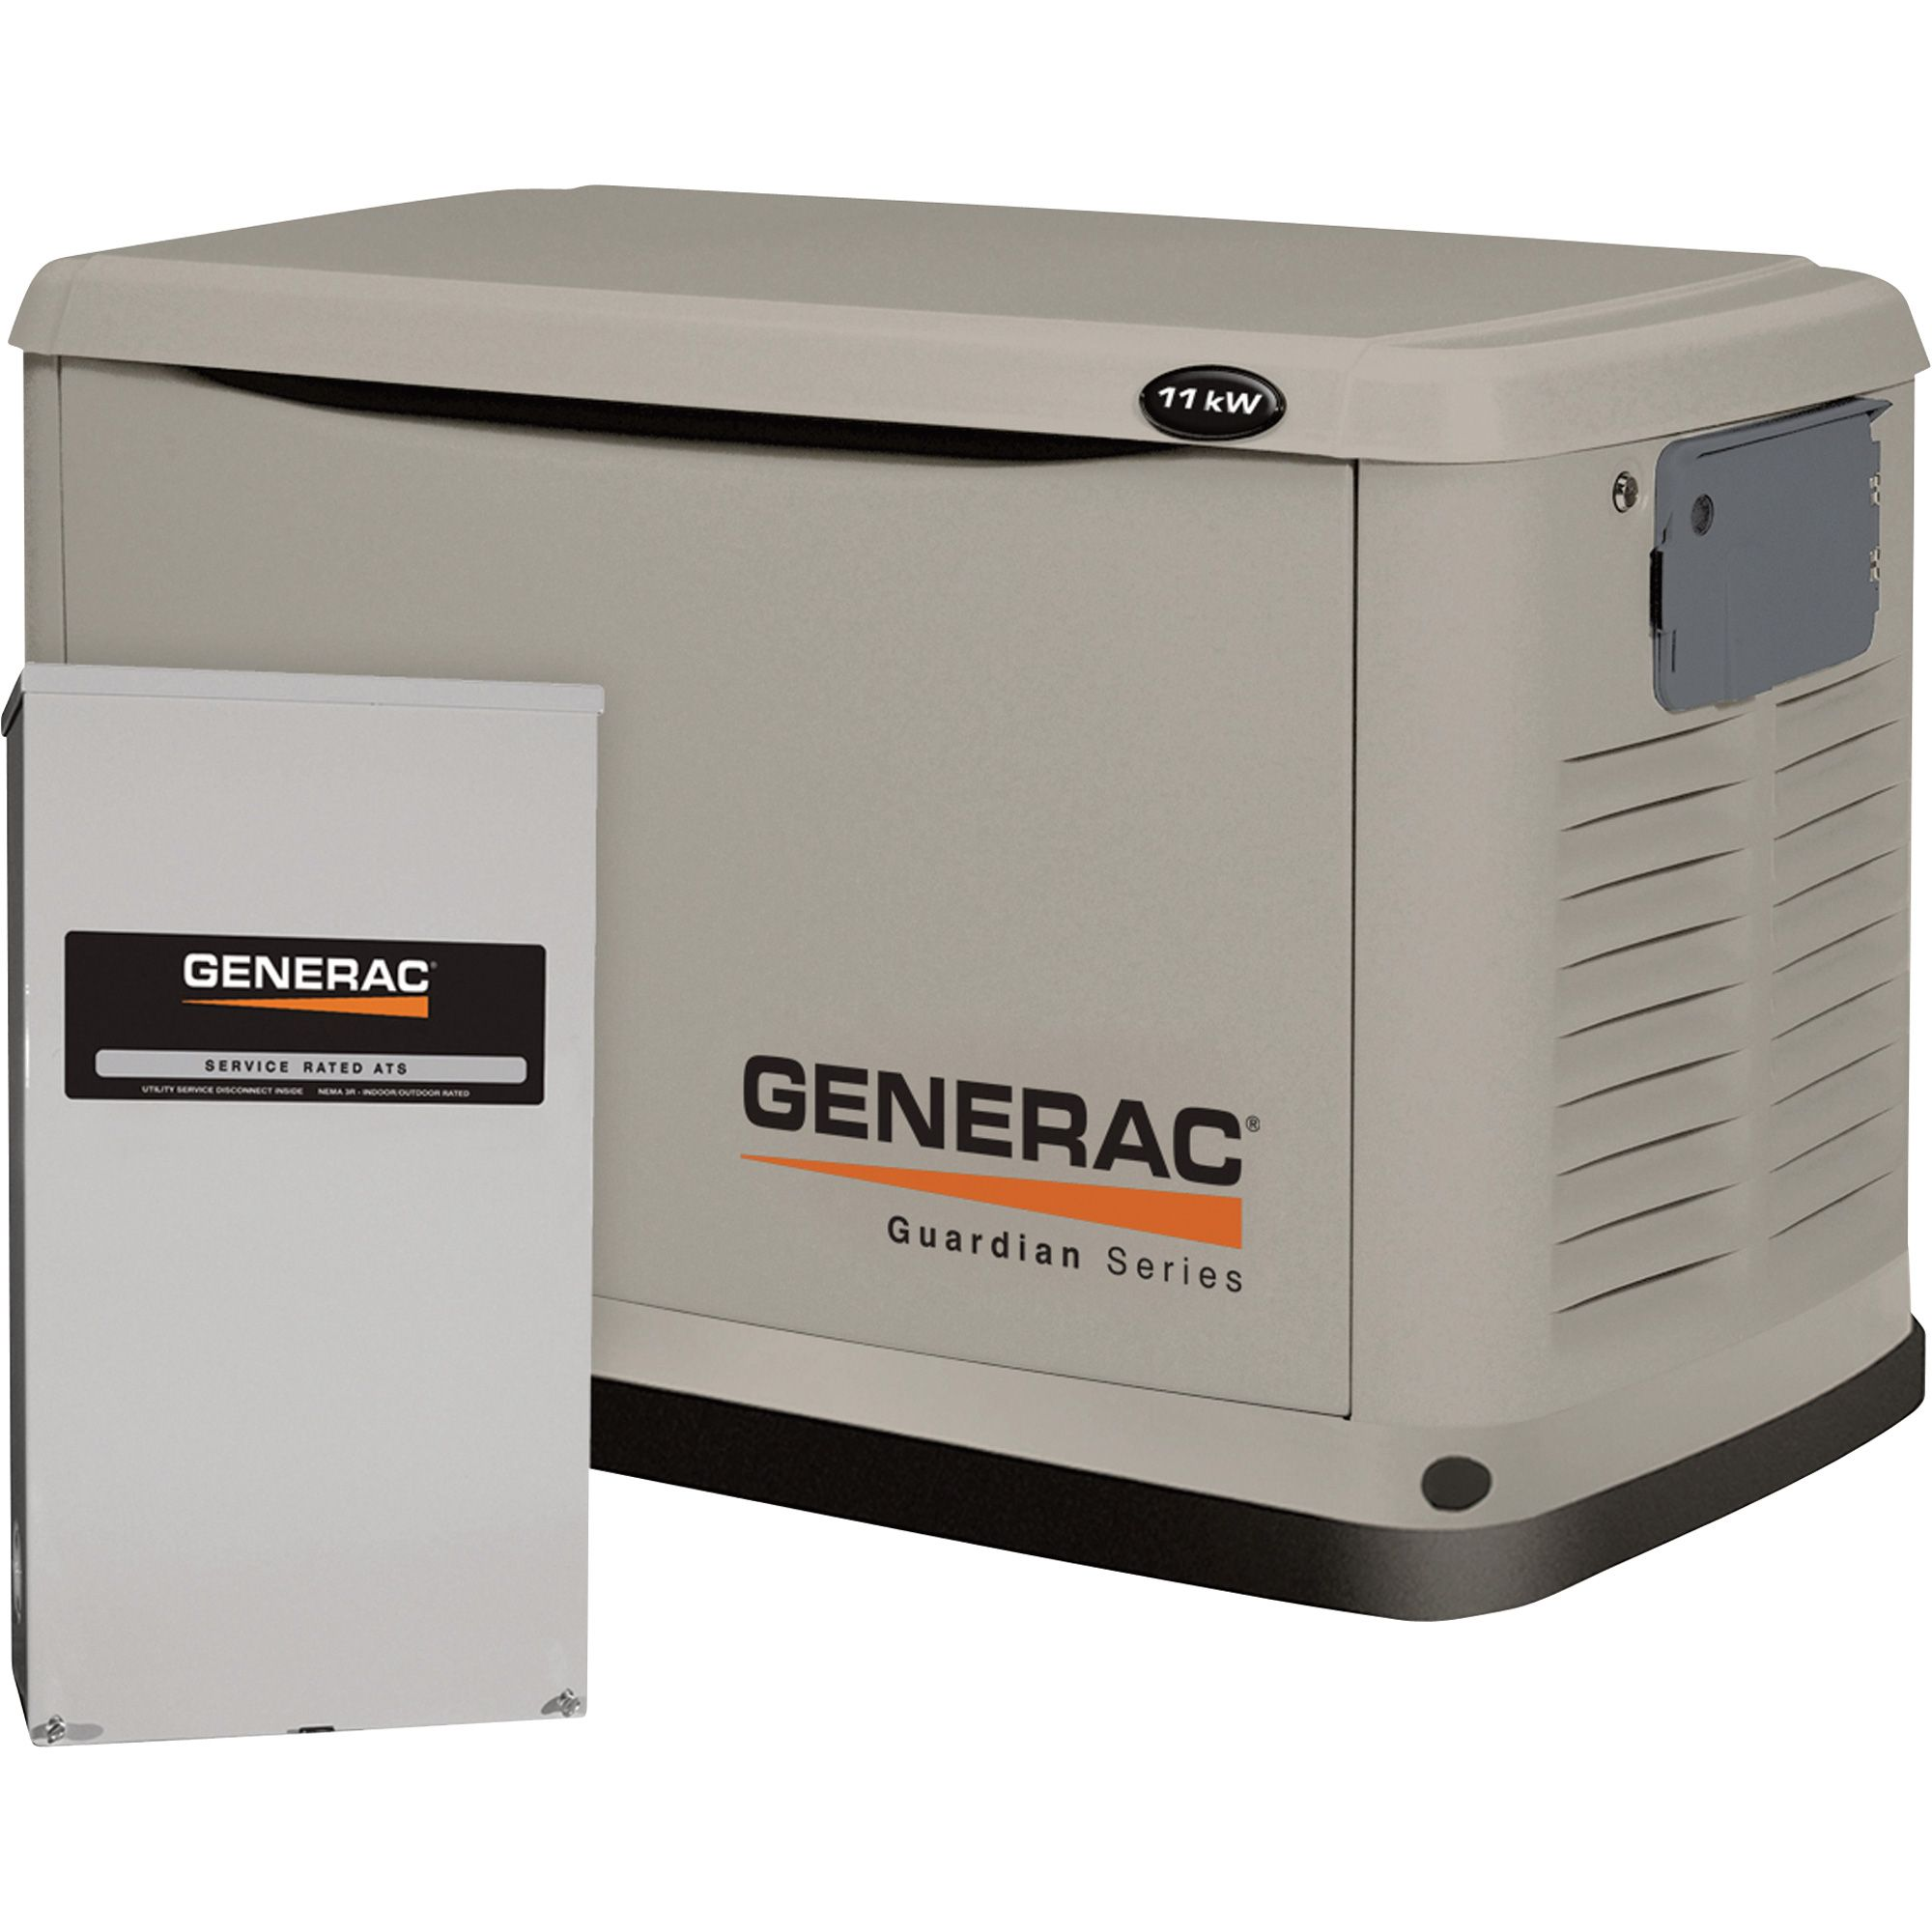 Please see replacement Item Generac Guardian Air Cooled